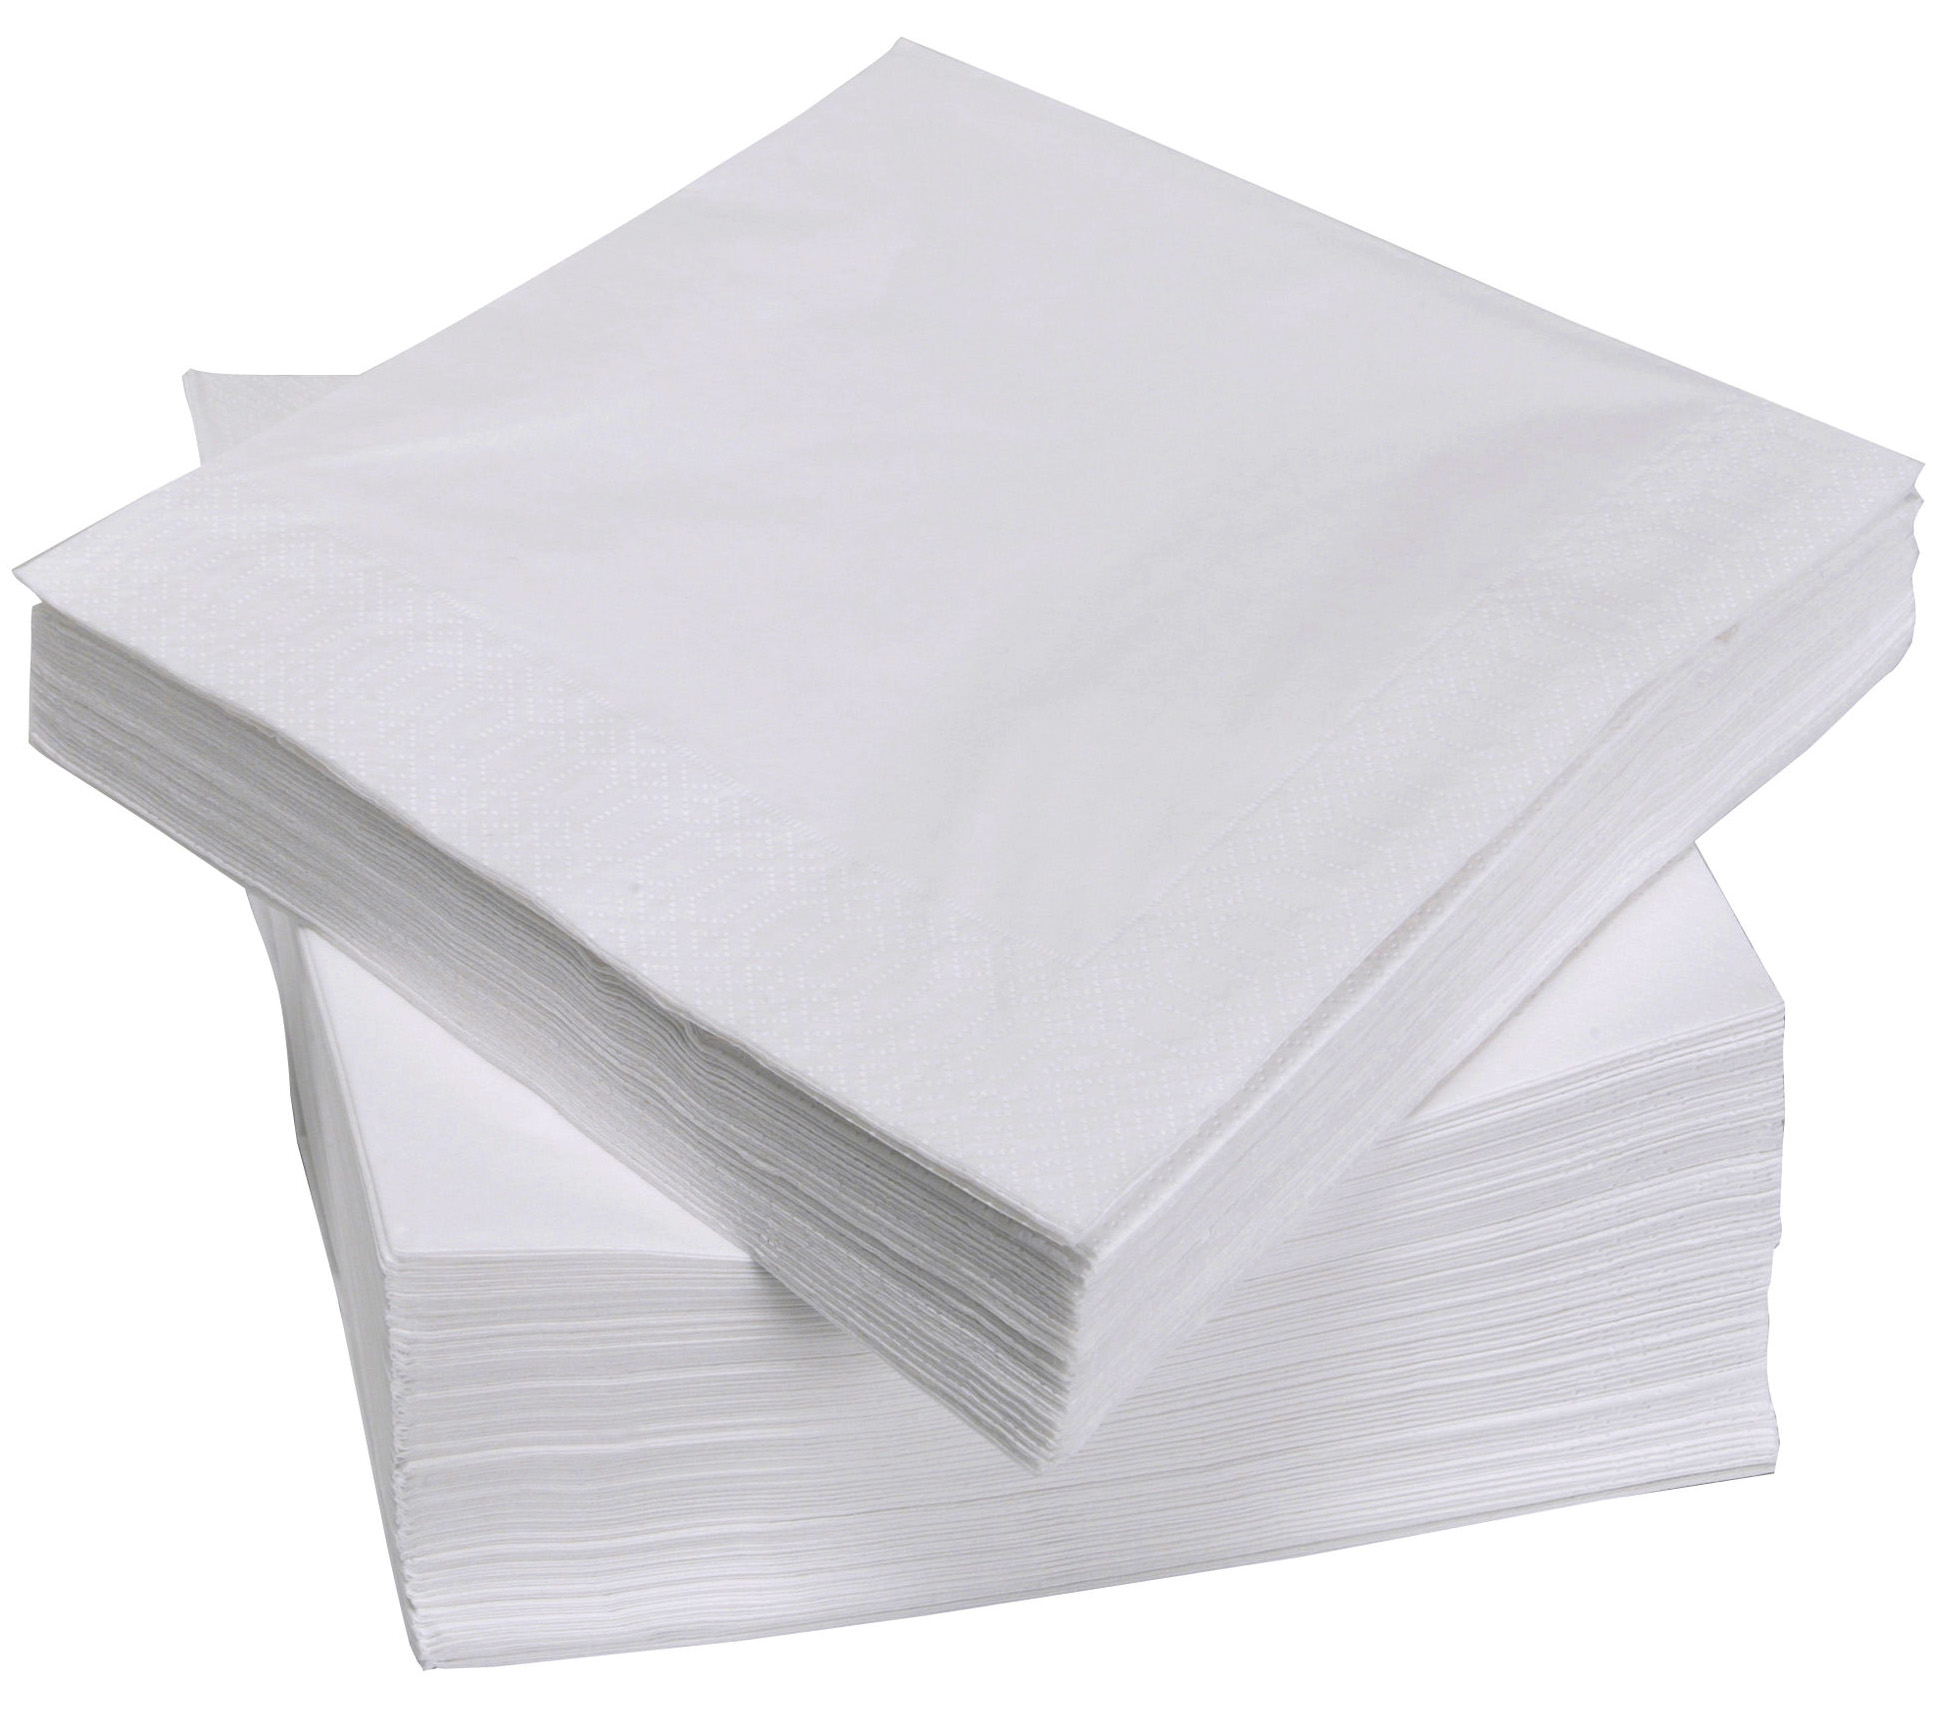 Serviettes / Napkins ValueX White Napkins 33cm 2ply (Pack 100)